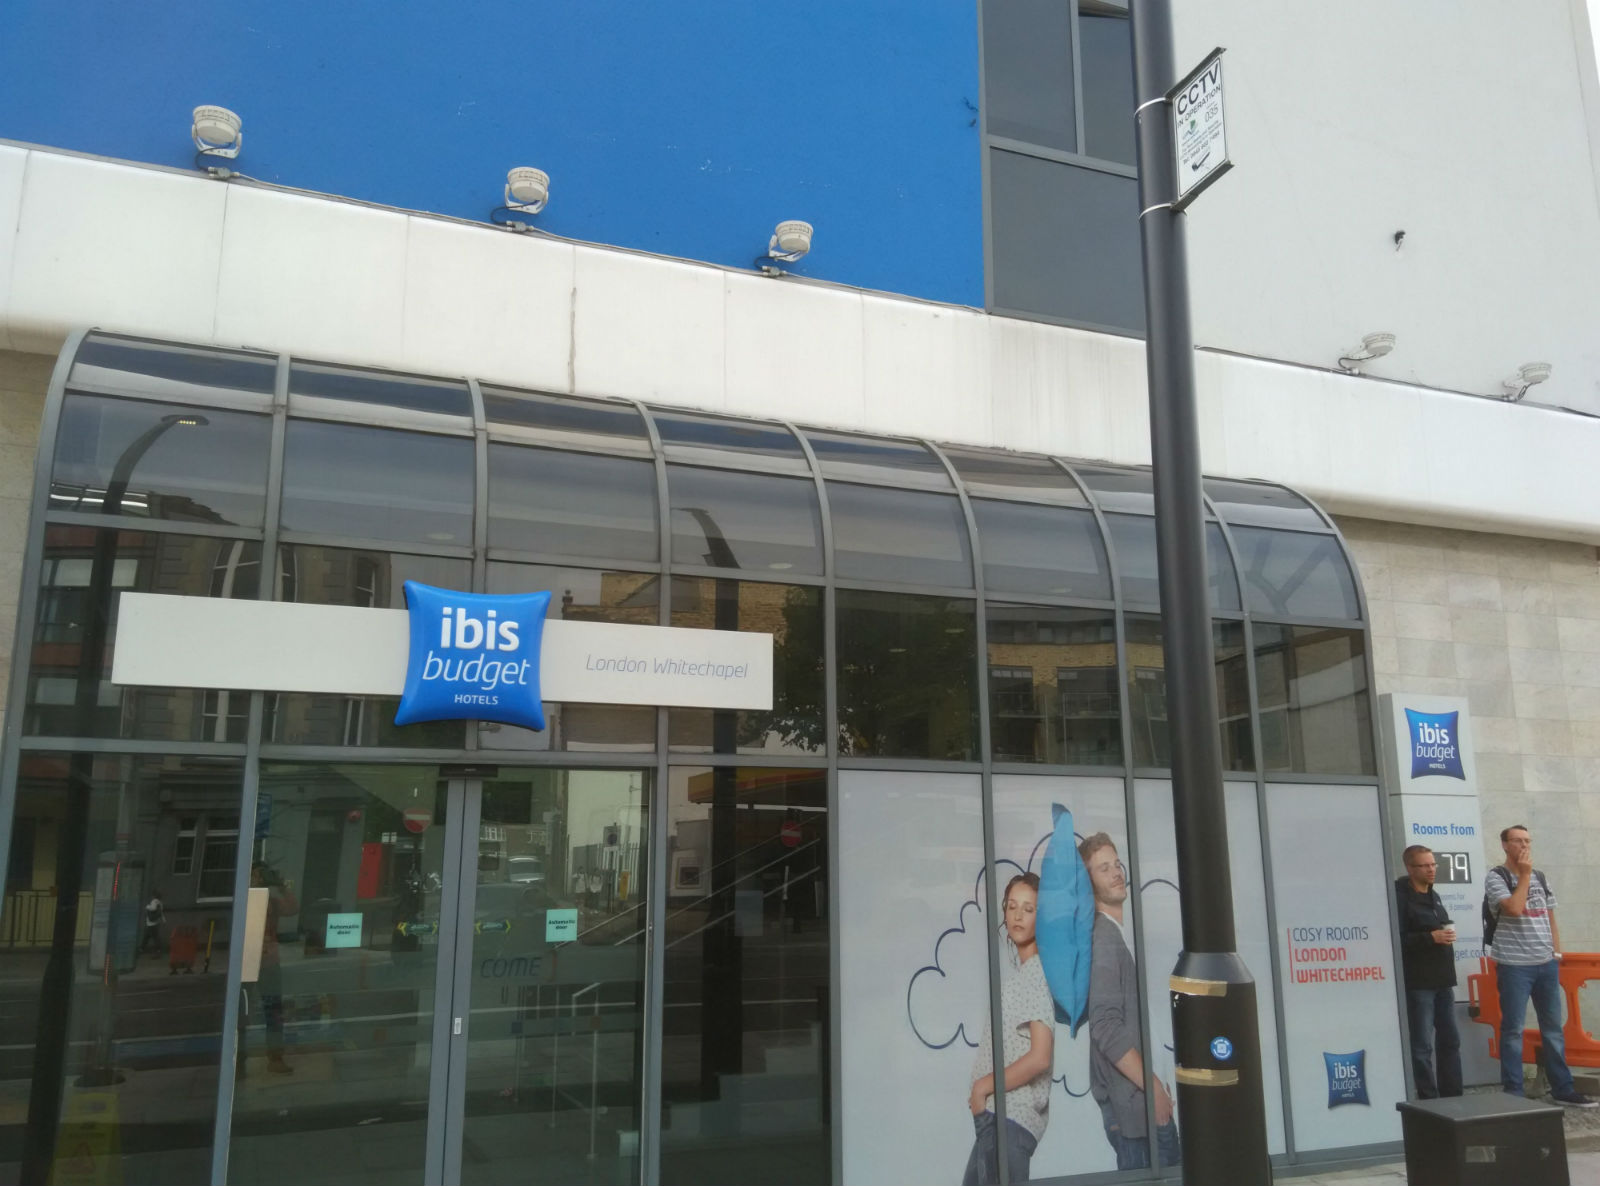 ibis-budget-london-whitechapel-exterior